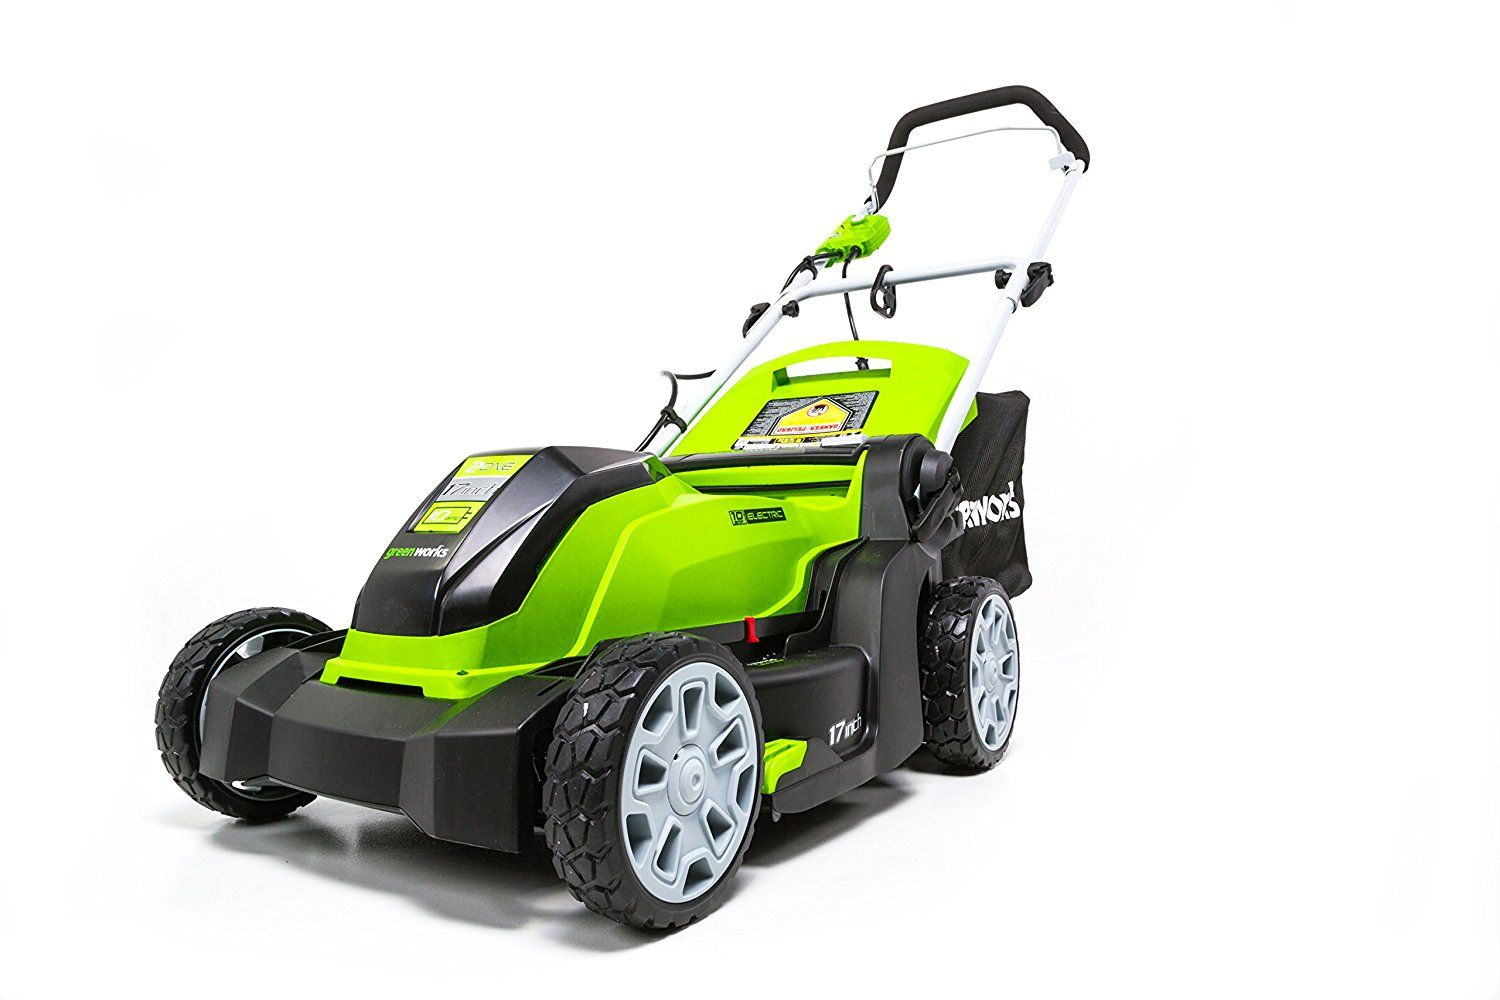 Best Cordless Lawn Mower 2021 best push lawn mower 2019 riding lawn mower best lawn mower push